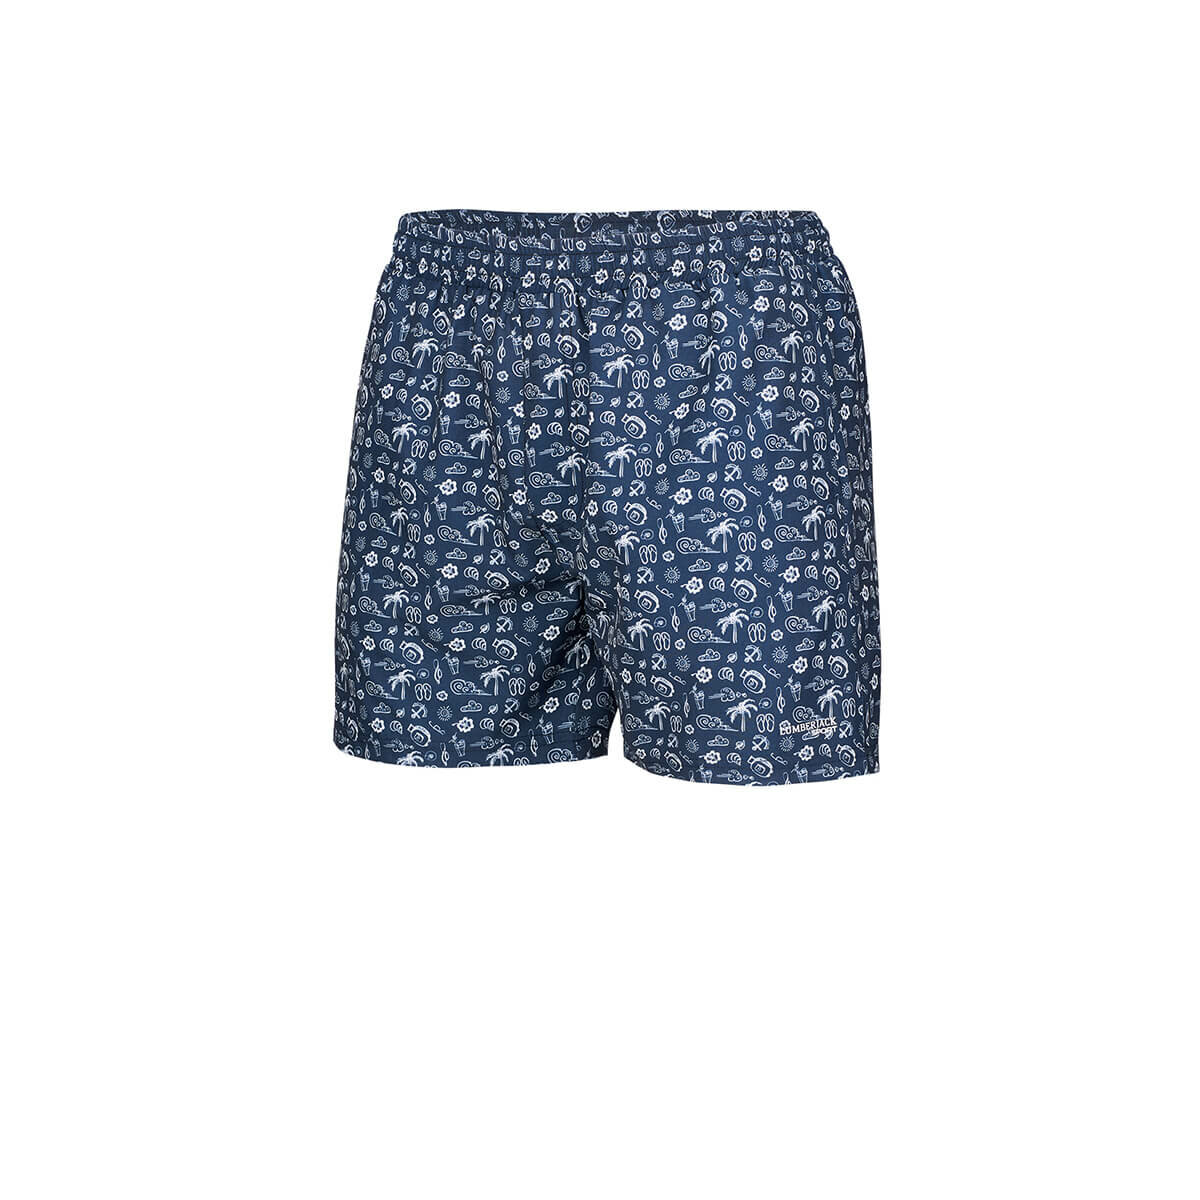 FLO BANE Dark Blue Male Shorts LUMBERJACK